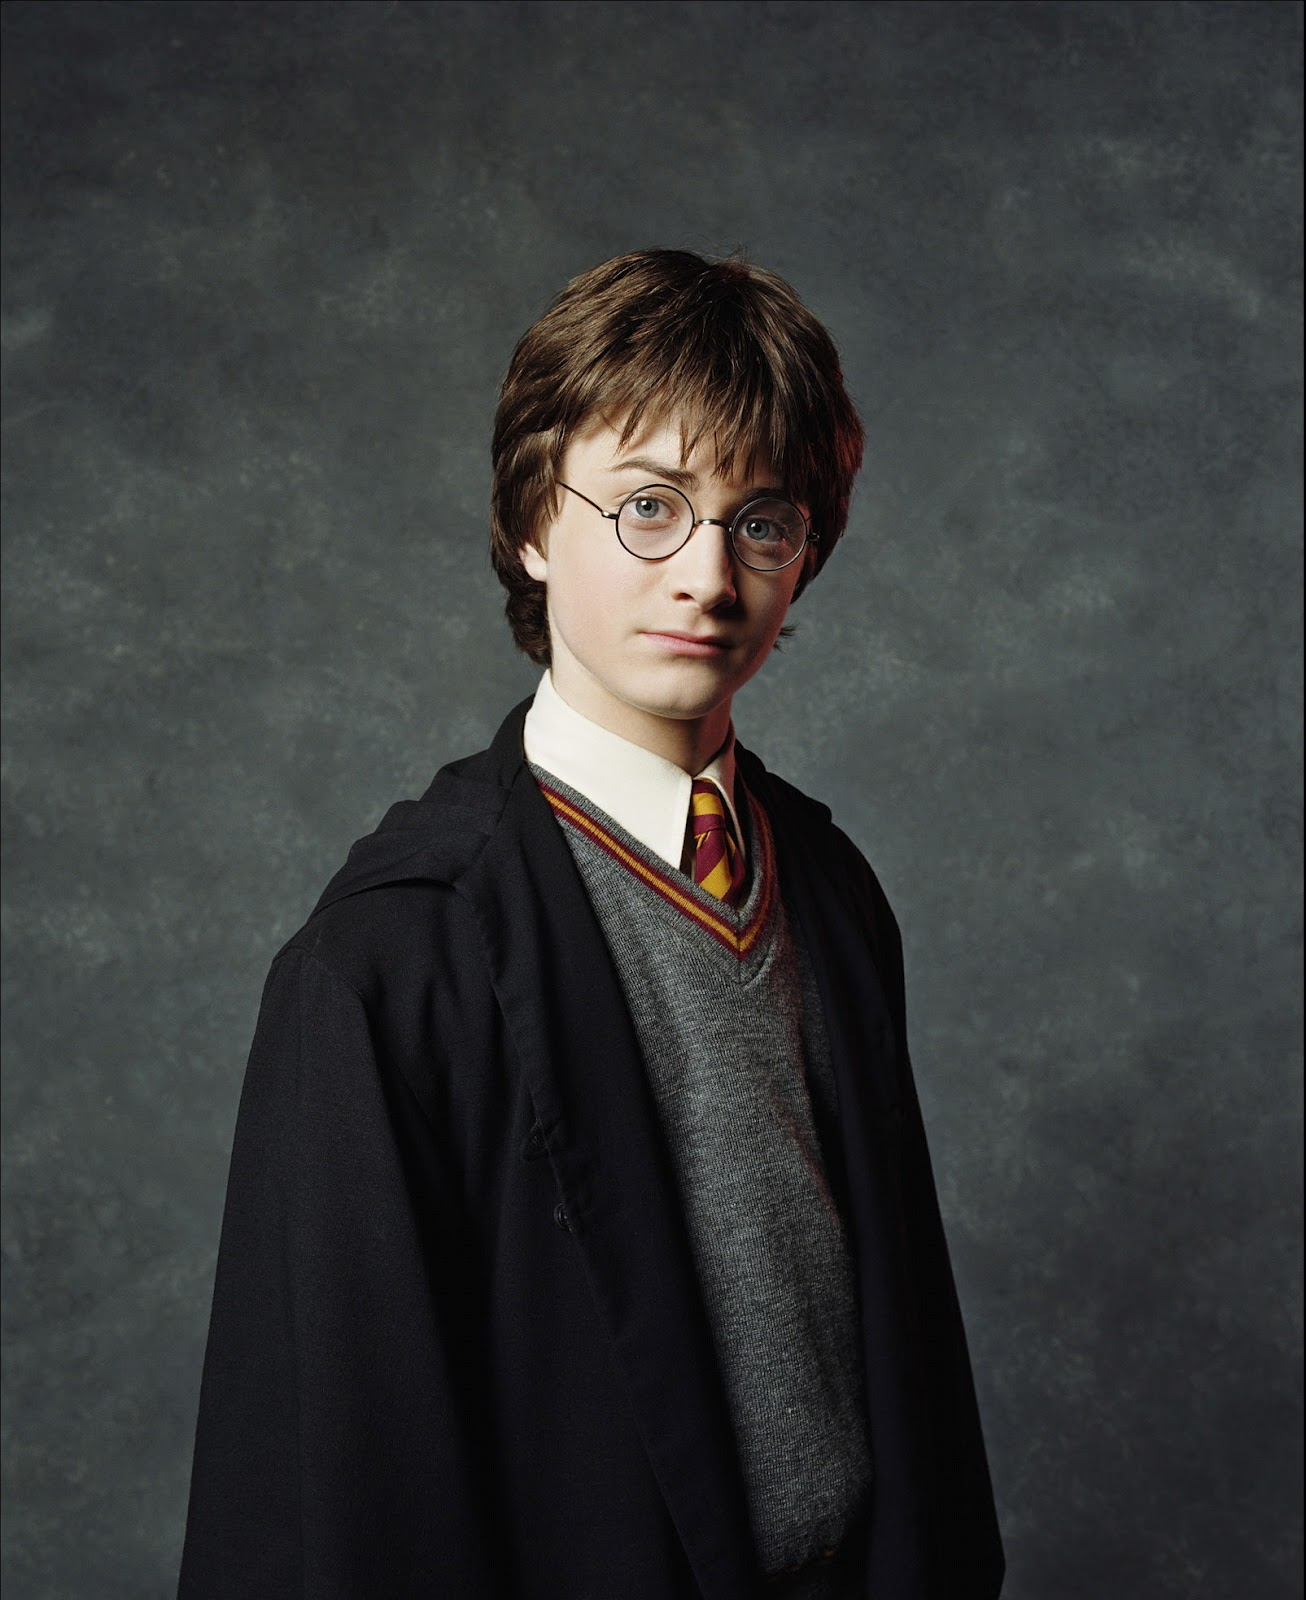 harry potter by lillibreeze - photo #7